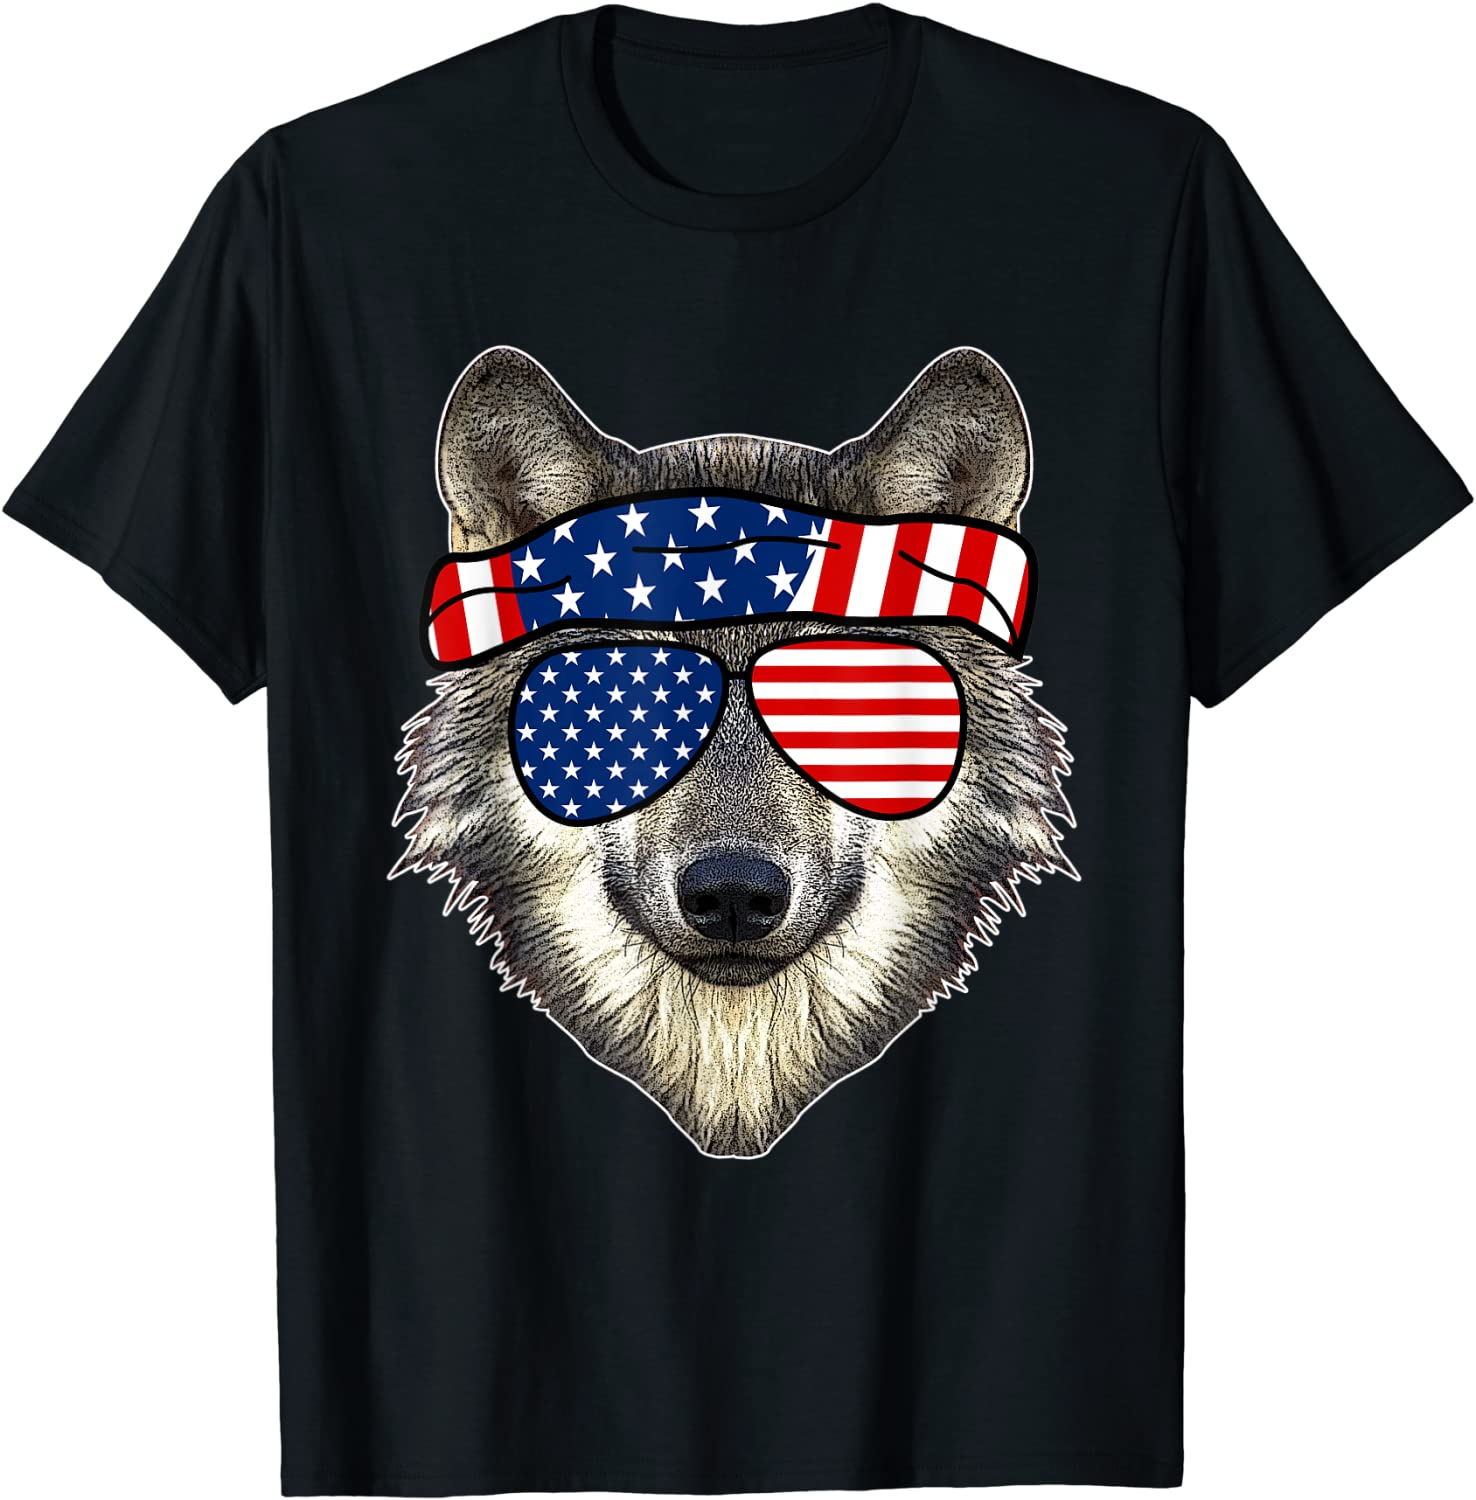 American Sunglasses Wolf 4th Of July Awesome Usa Gift T Shirt